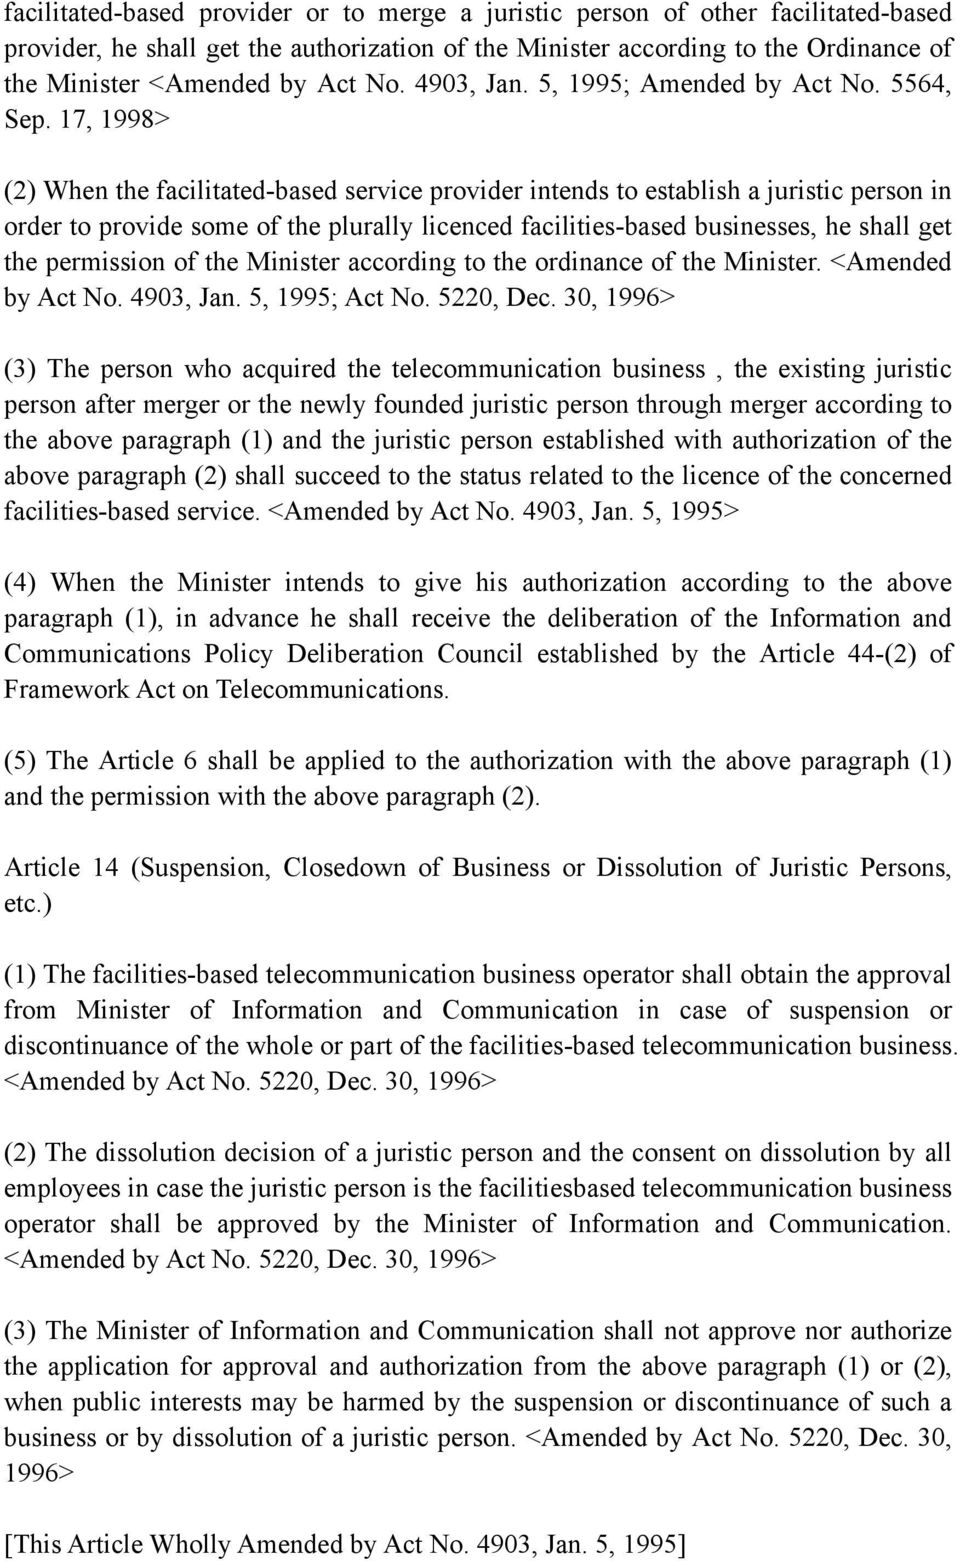 17, 1998> (2) When the facilitated-based service provider intends to establish a juristic person in order to provide some of the plurally licenced facilities-based businesses, he shall get the